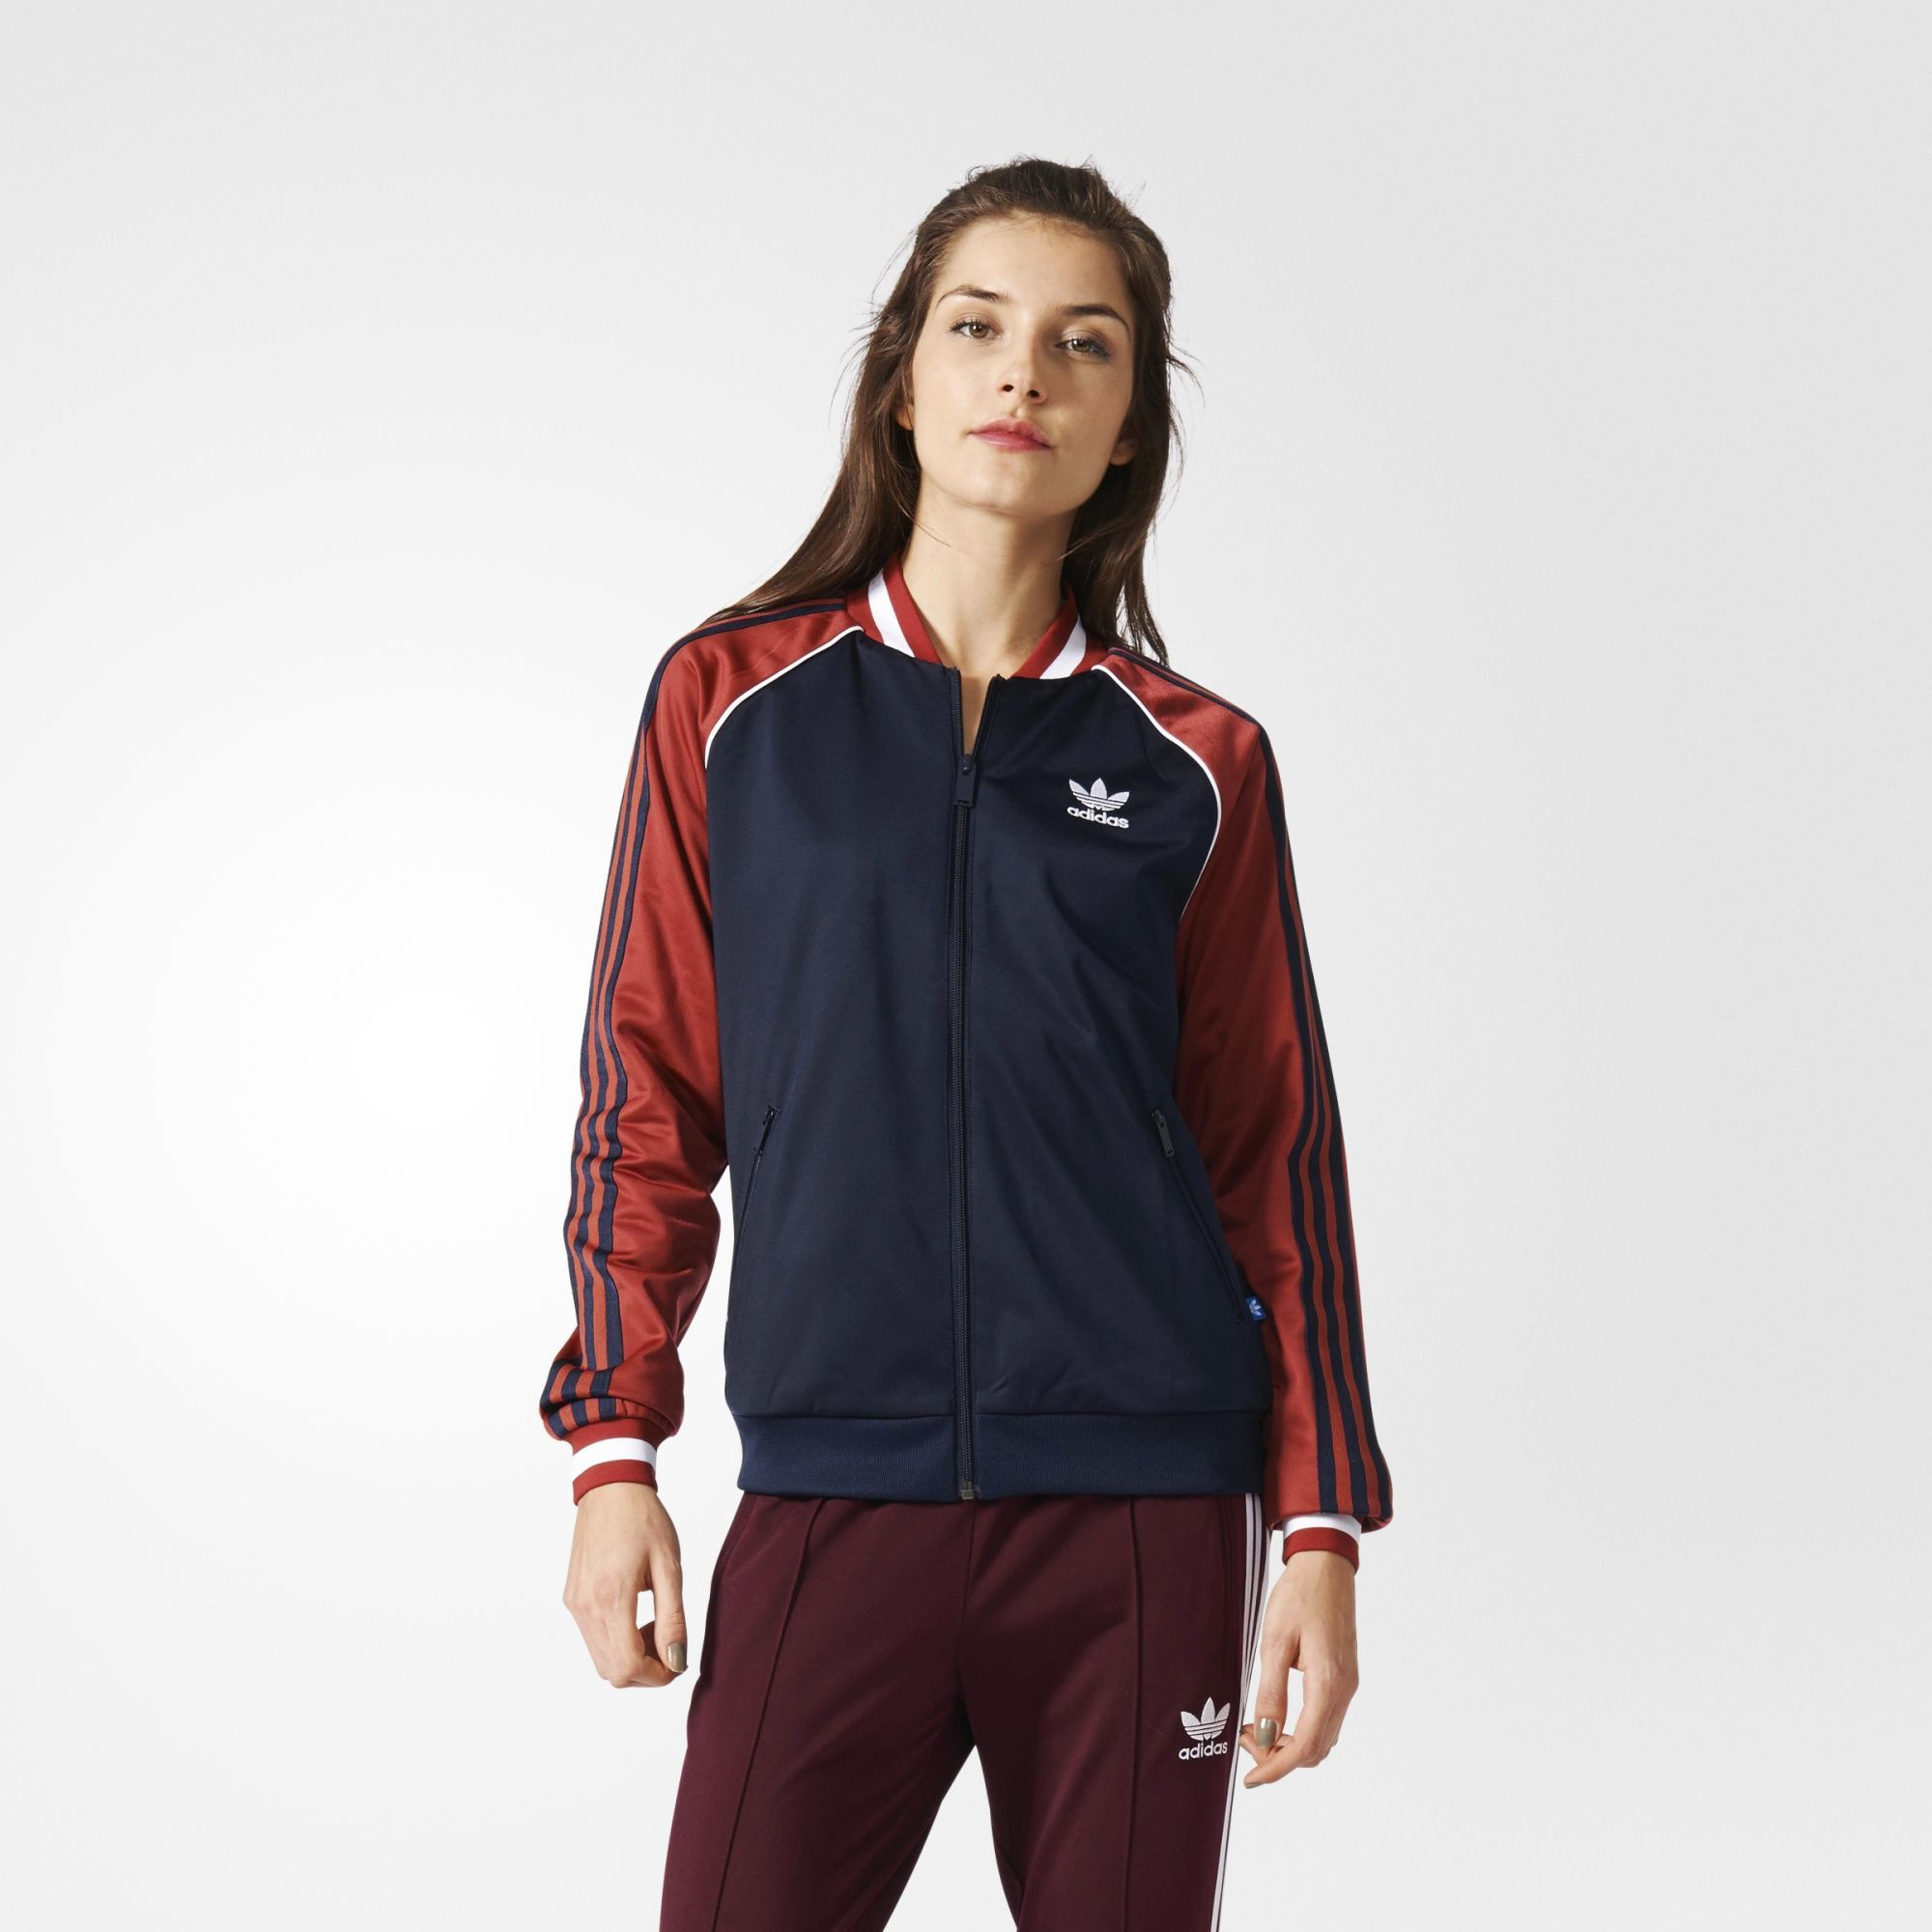 Adidas Track Sst And Jacket Pinterest Faces Jackets T06rUwTq